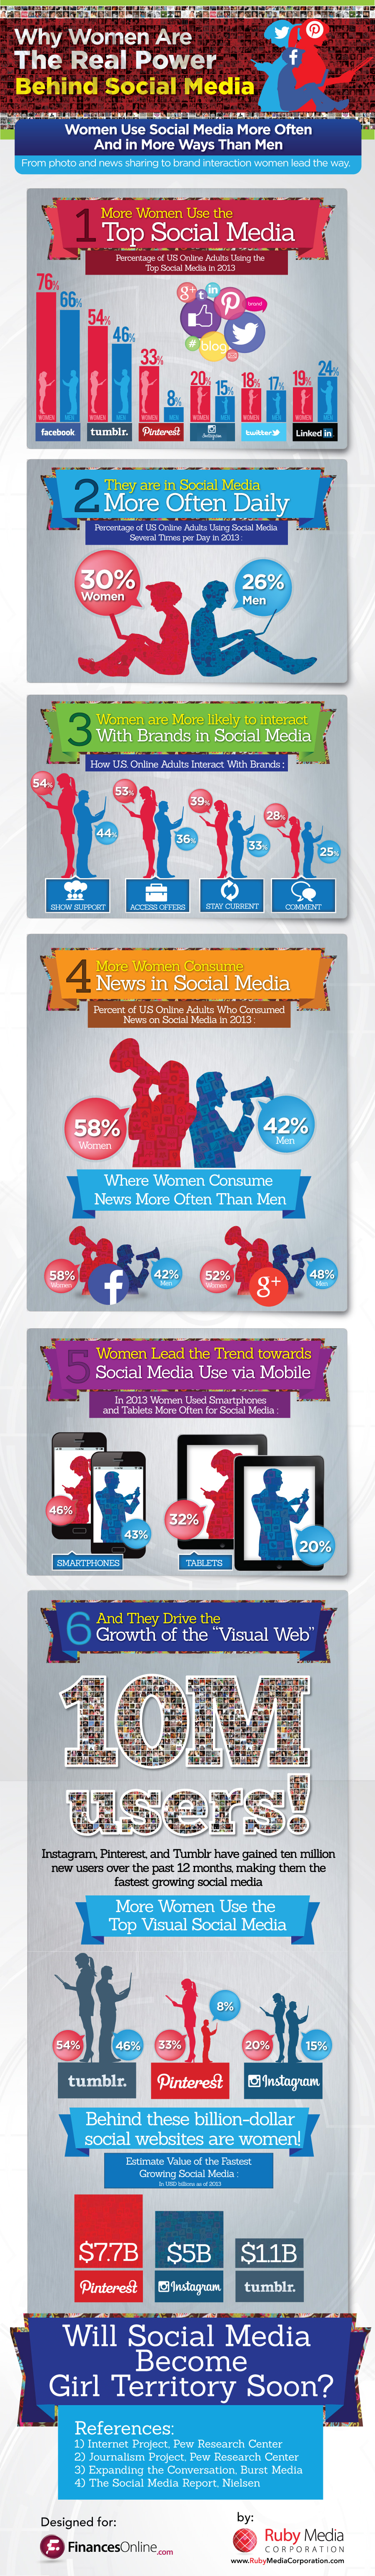 Top Social Media Review: Why Women Are The Real Power Behind Their Success